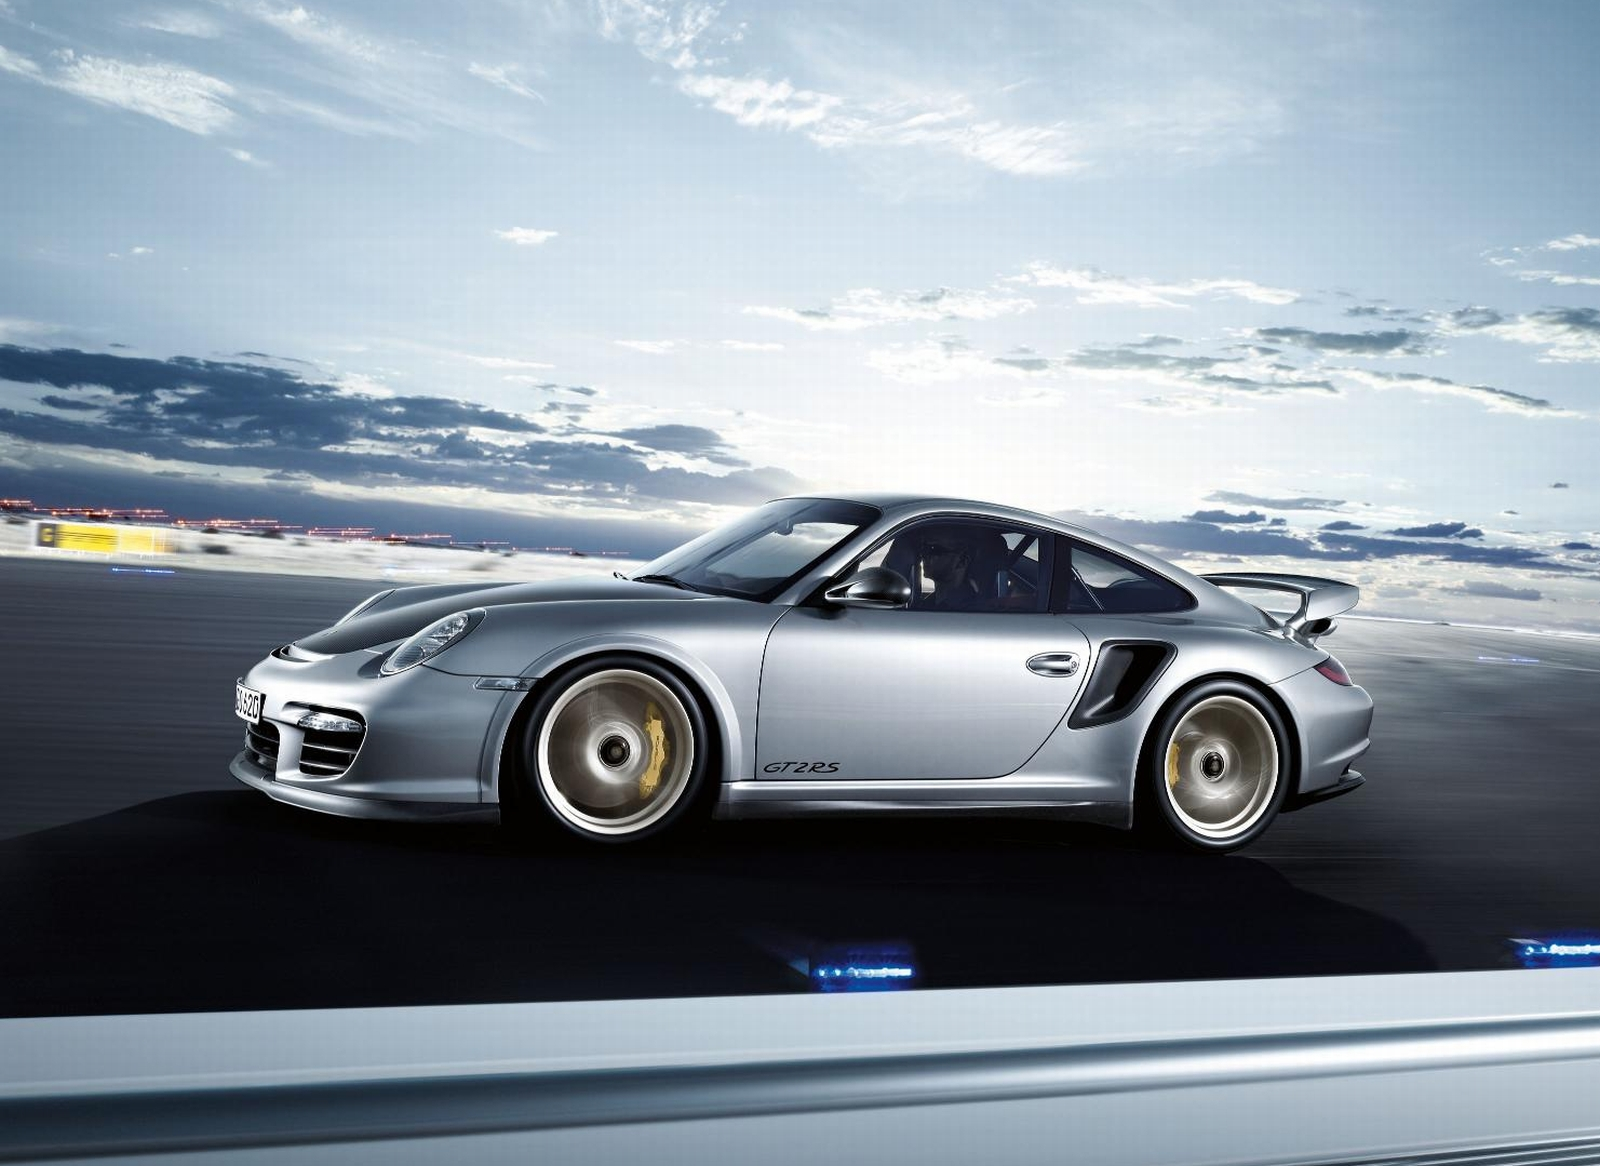 porsche 911 gt2 1600x1200 wallpaper car hd wallpapers prices review. Black Bedroom Furniture Sets. Home Design Ideas